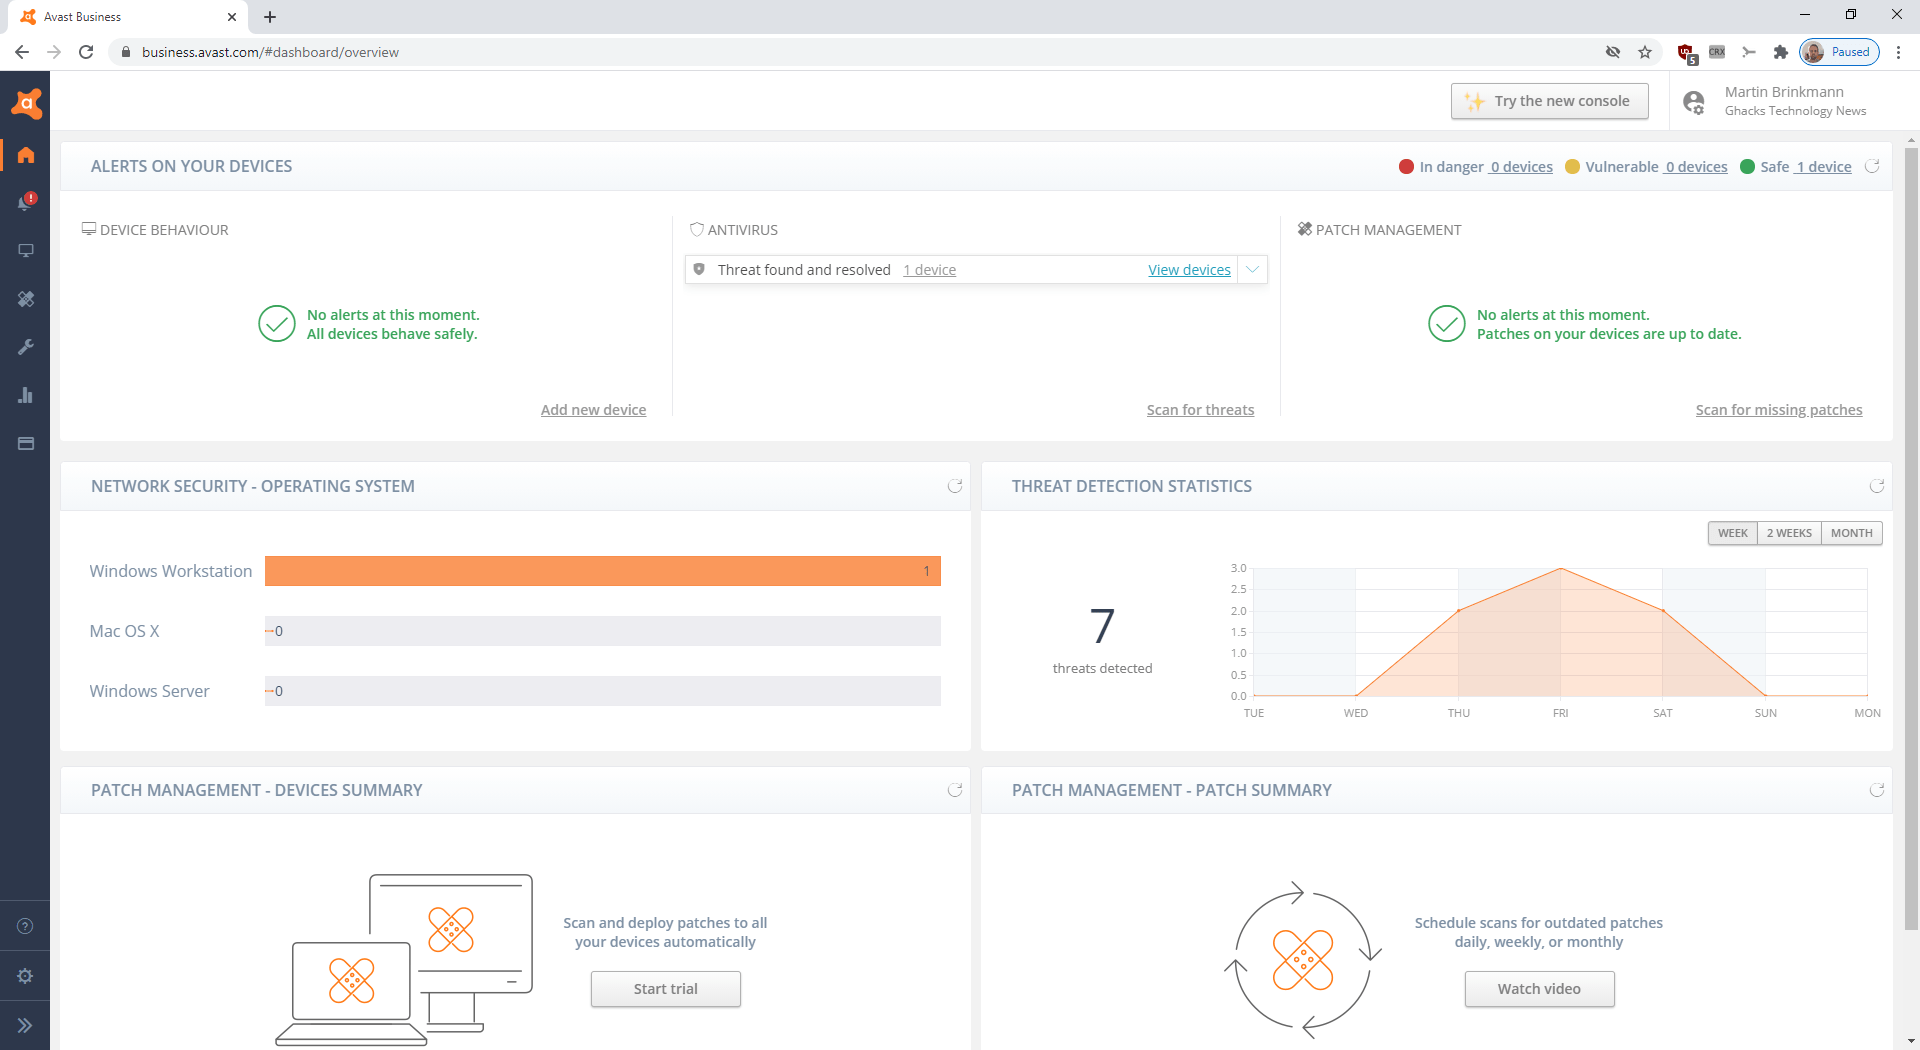 avast cloud dashboard